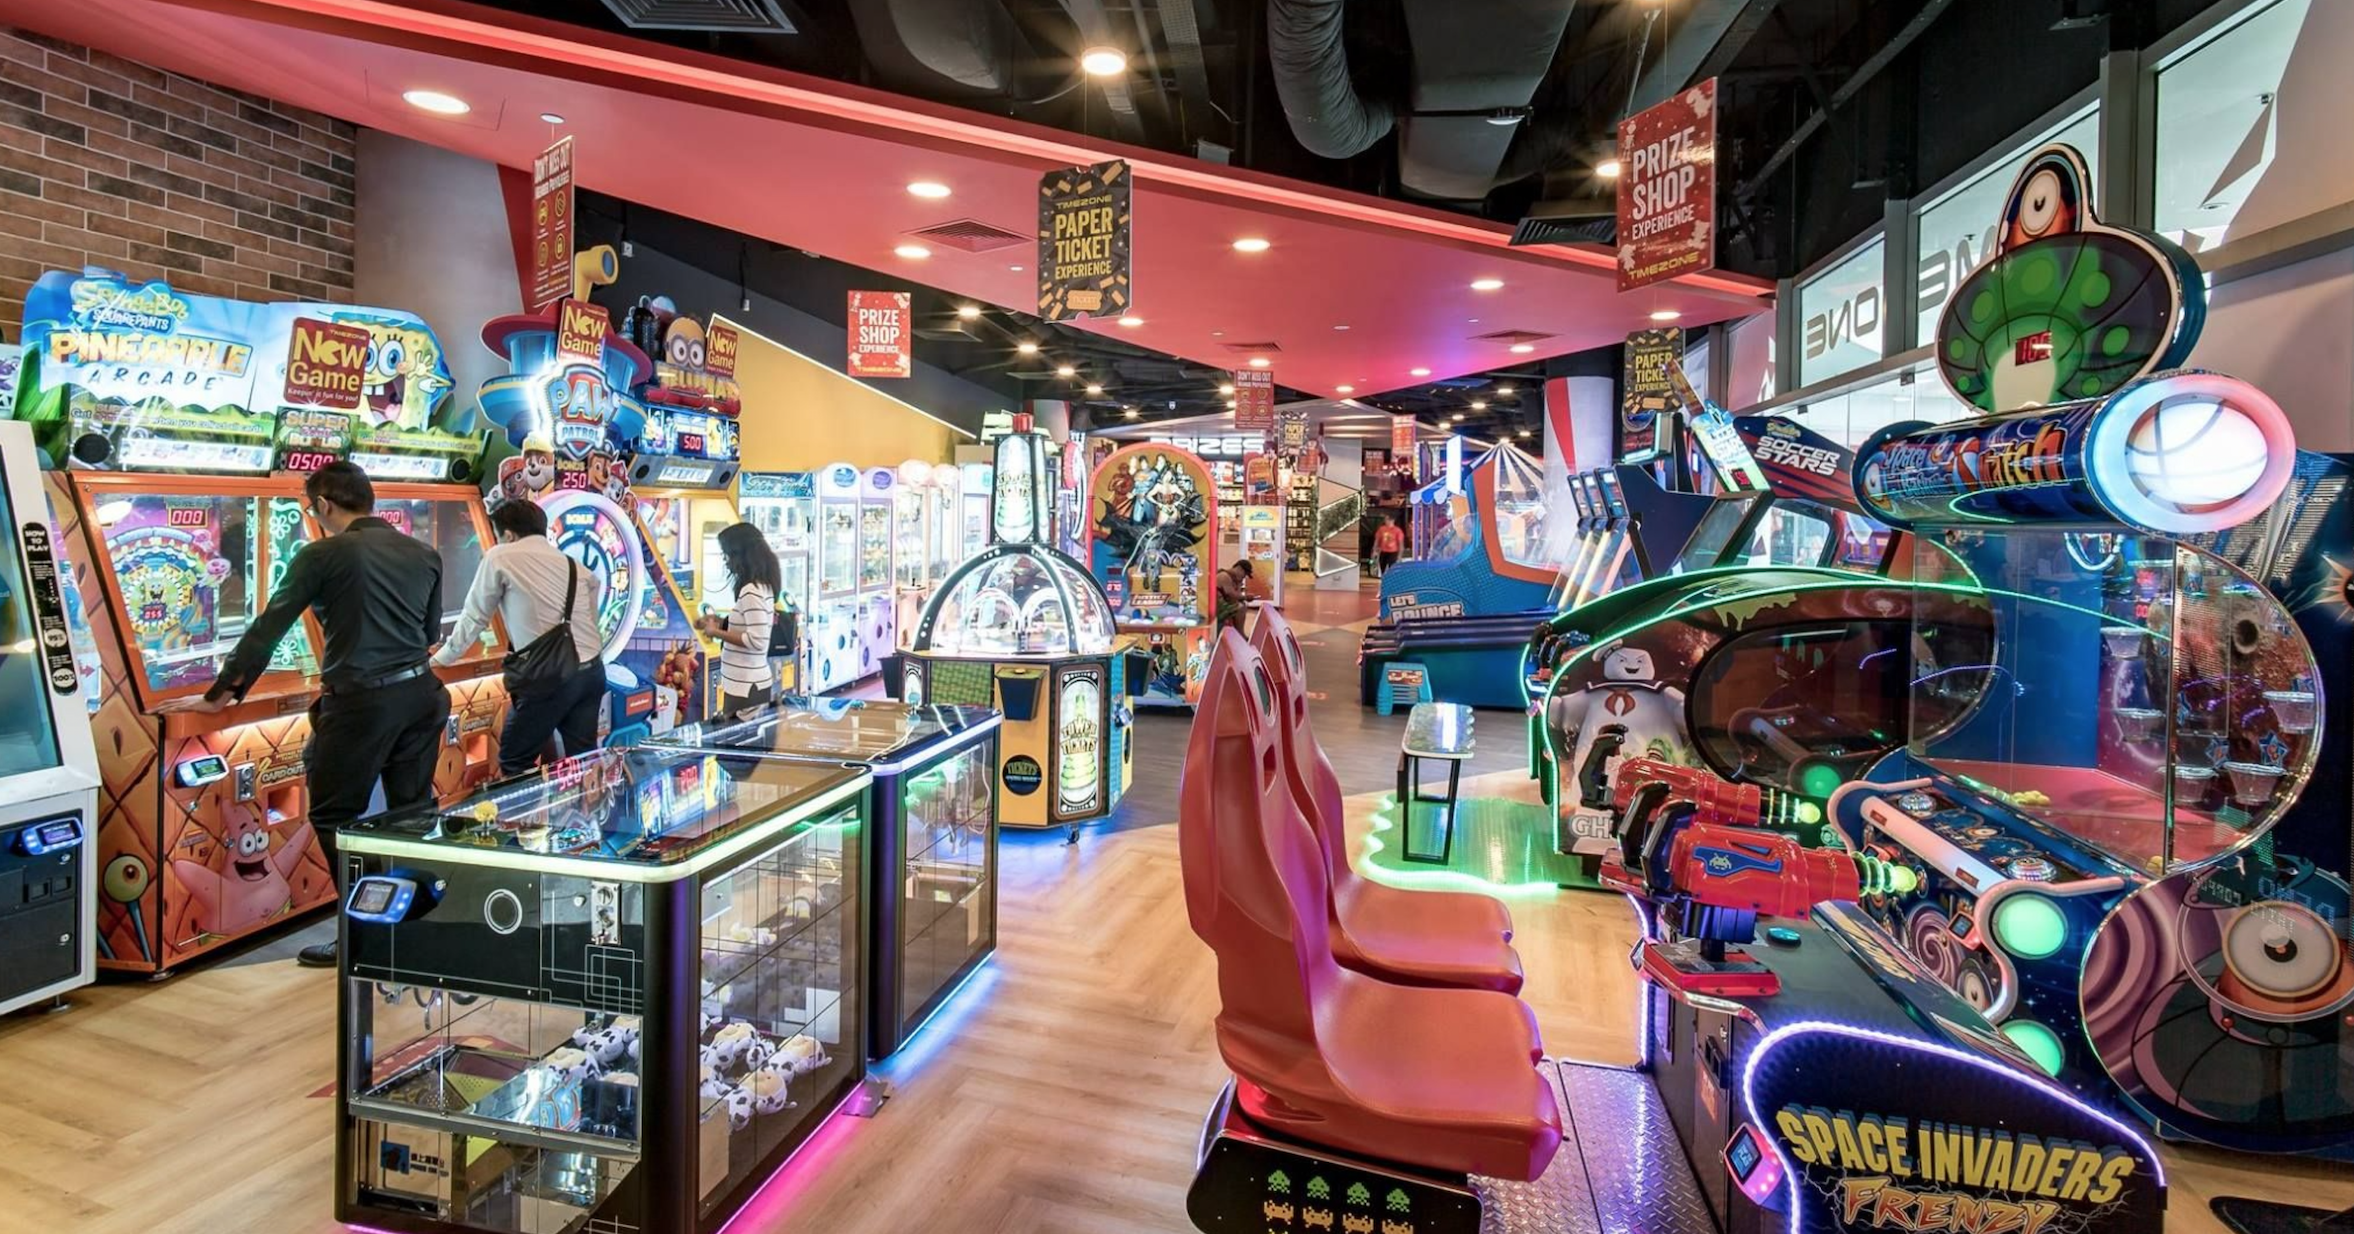 S'pore's largest Timezone opening at Westgate on Dec. 4 with over 200 games  & attractions - Mothership.SG - News from Singapore, Asia and around the  world